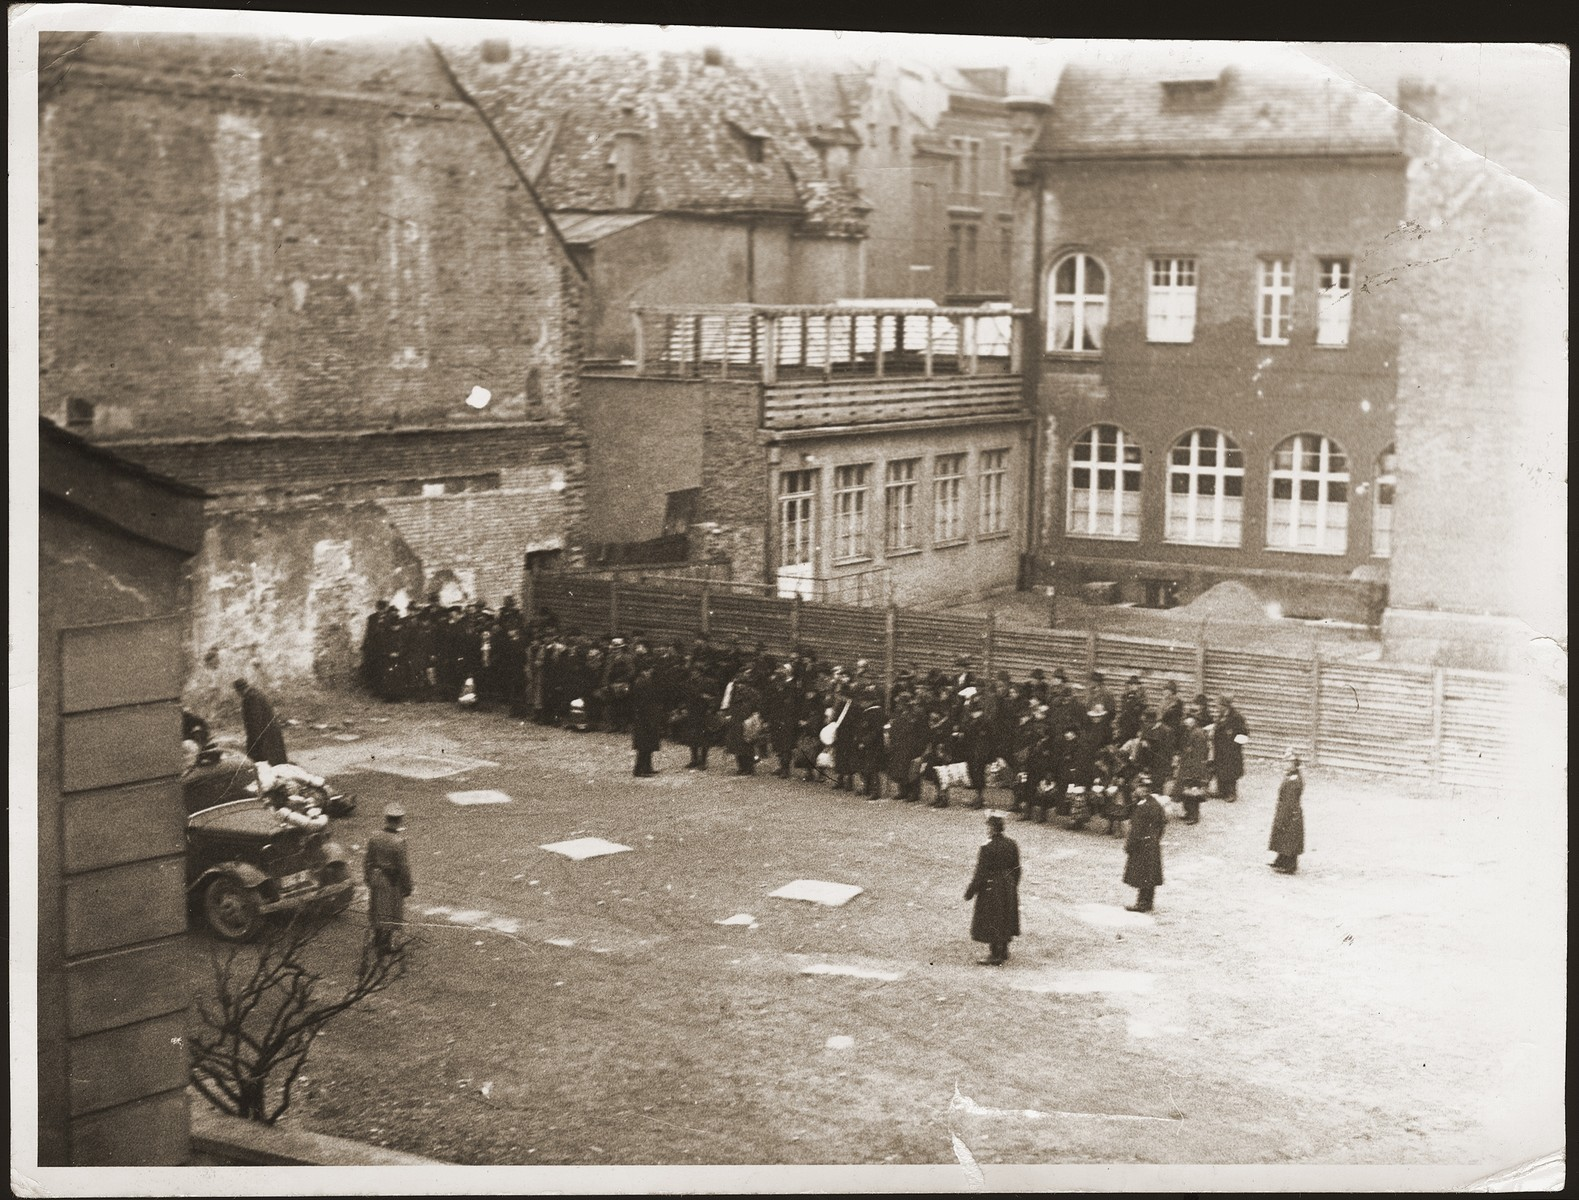 German soldiers rounding up Jews on Francuska Street in the Dombrowa ghetto.